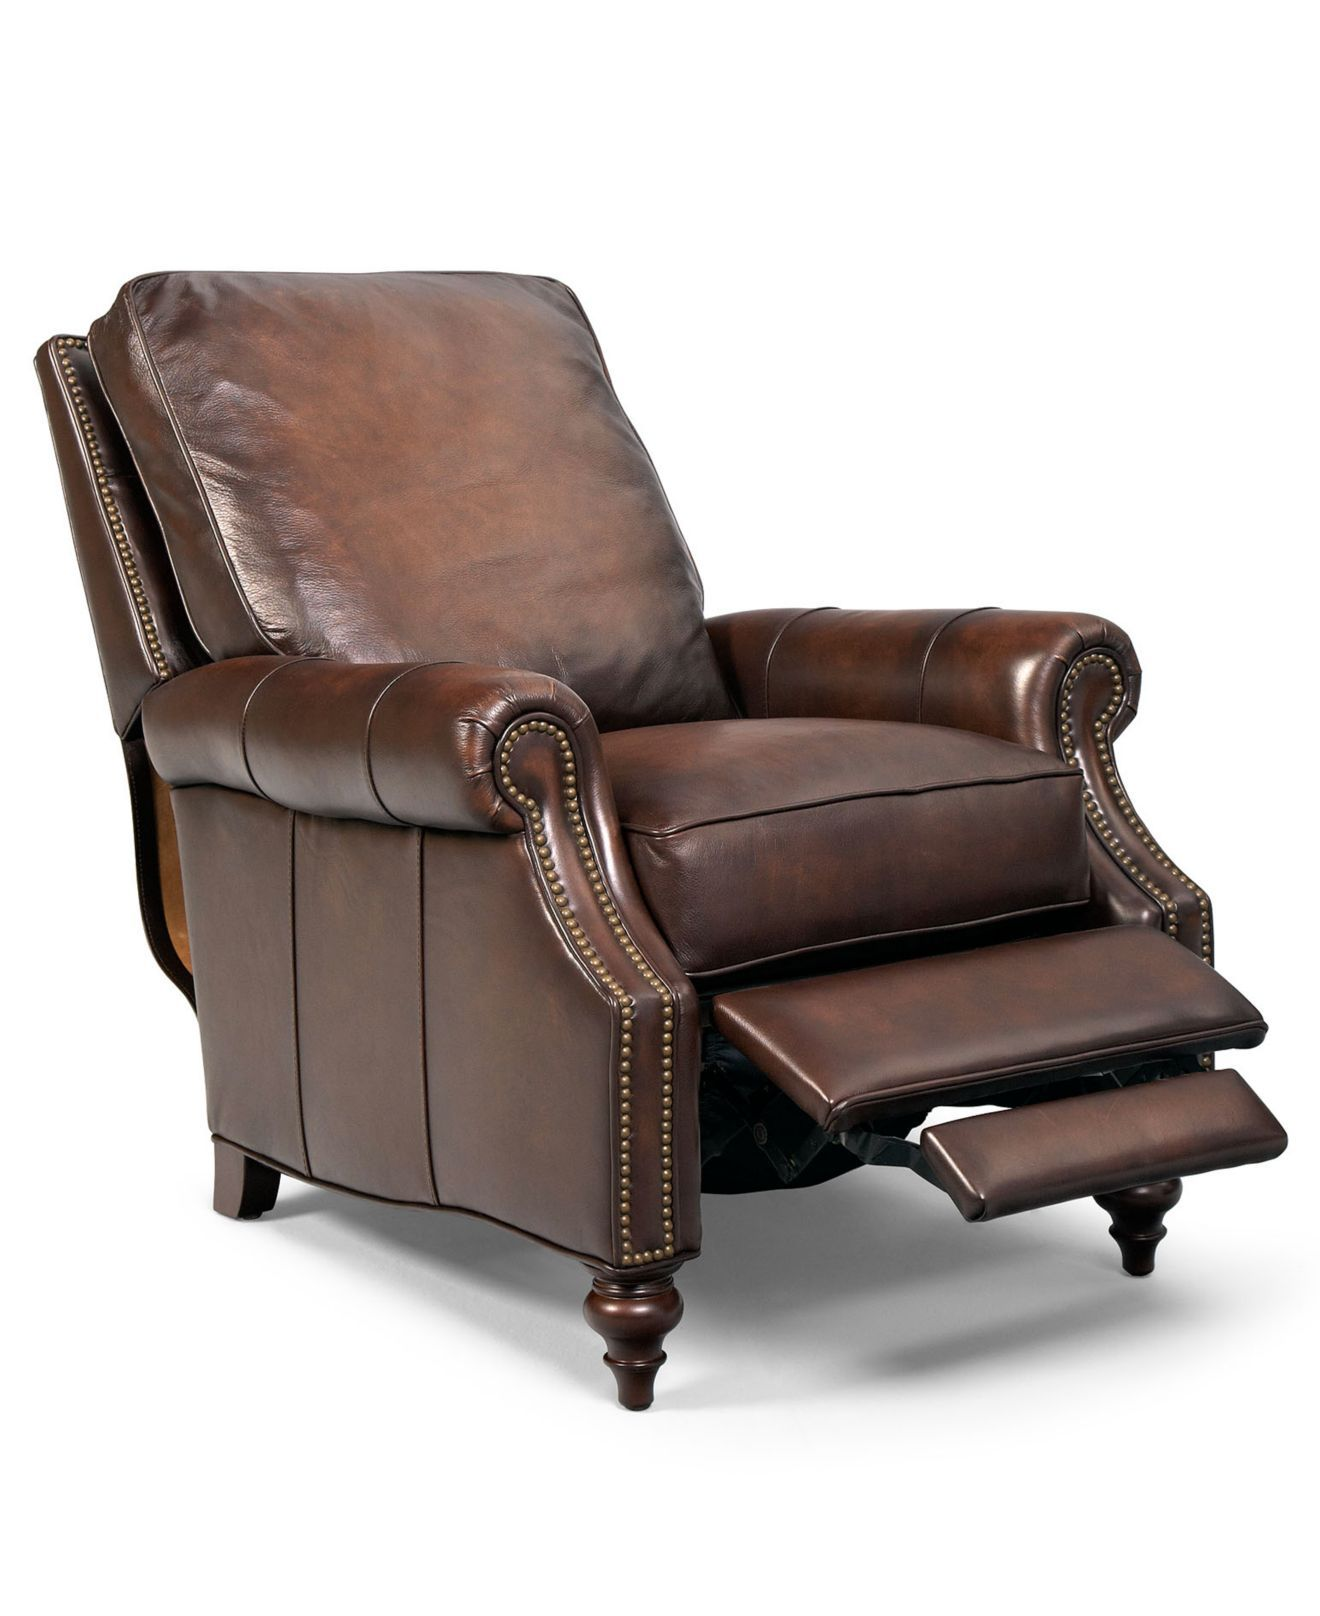 chairs reclining image room product living sets pc rm to go rooms zoom roll sectional over lr saybrook brown recliner